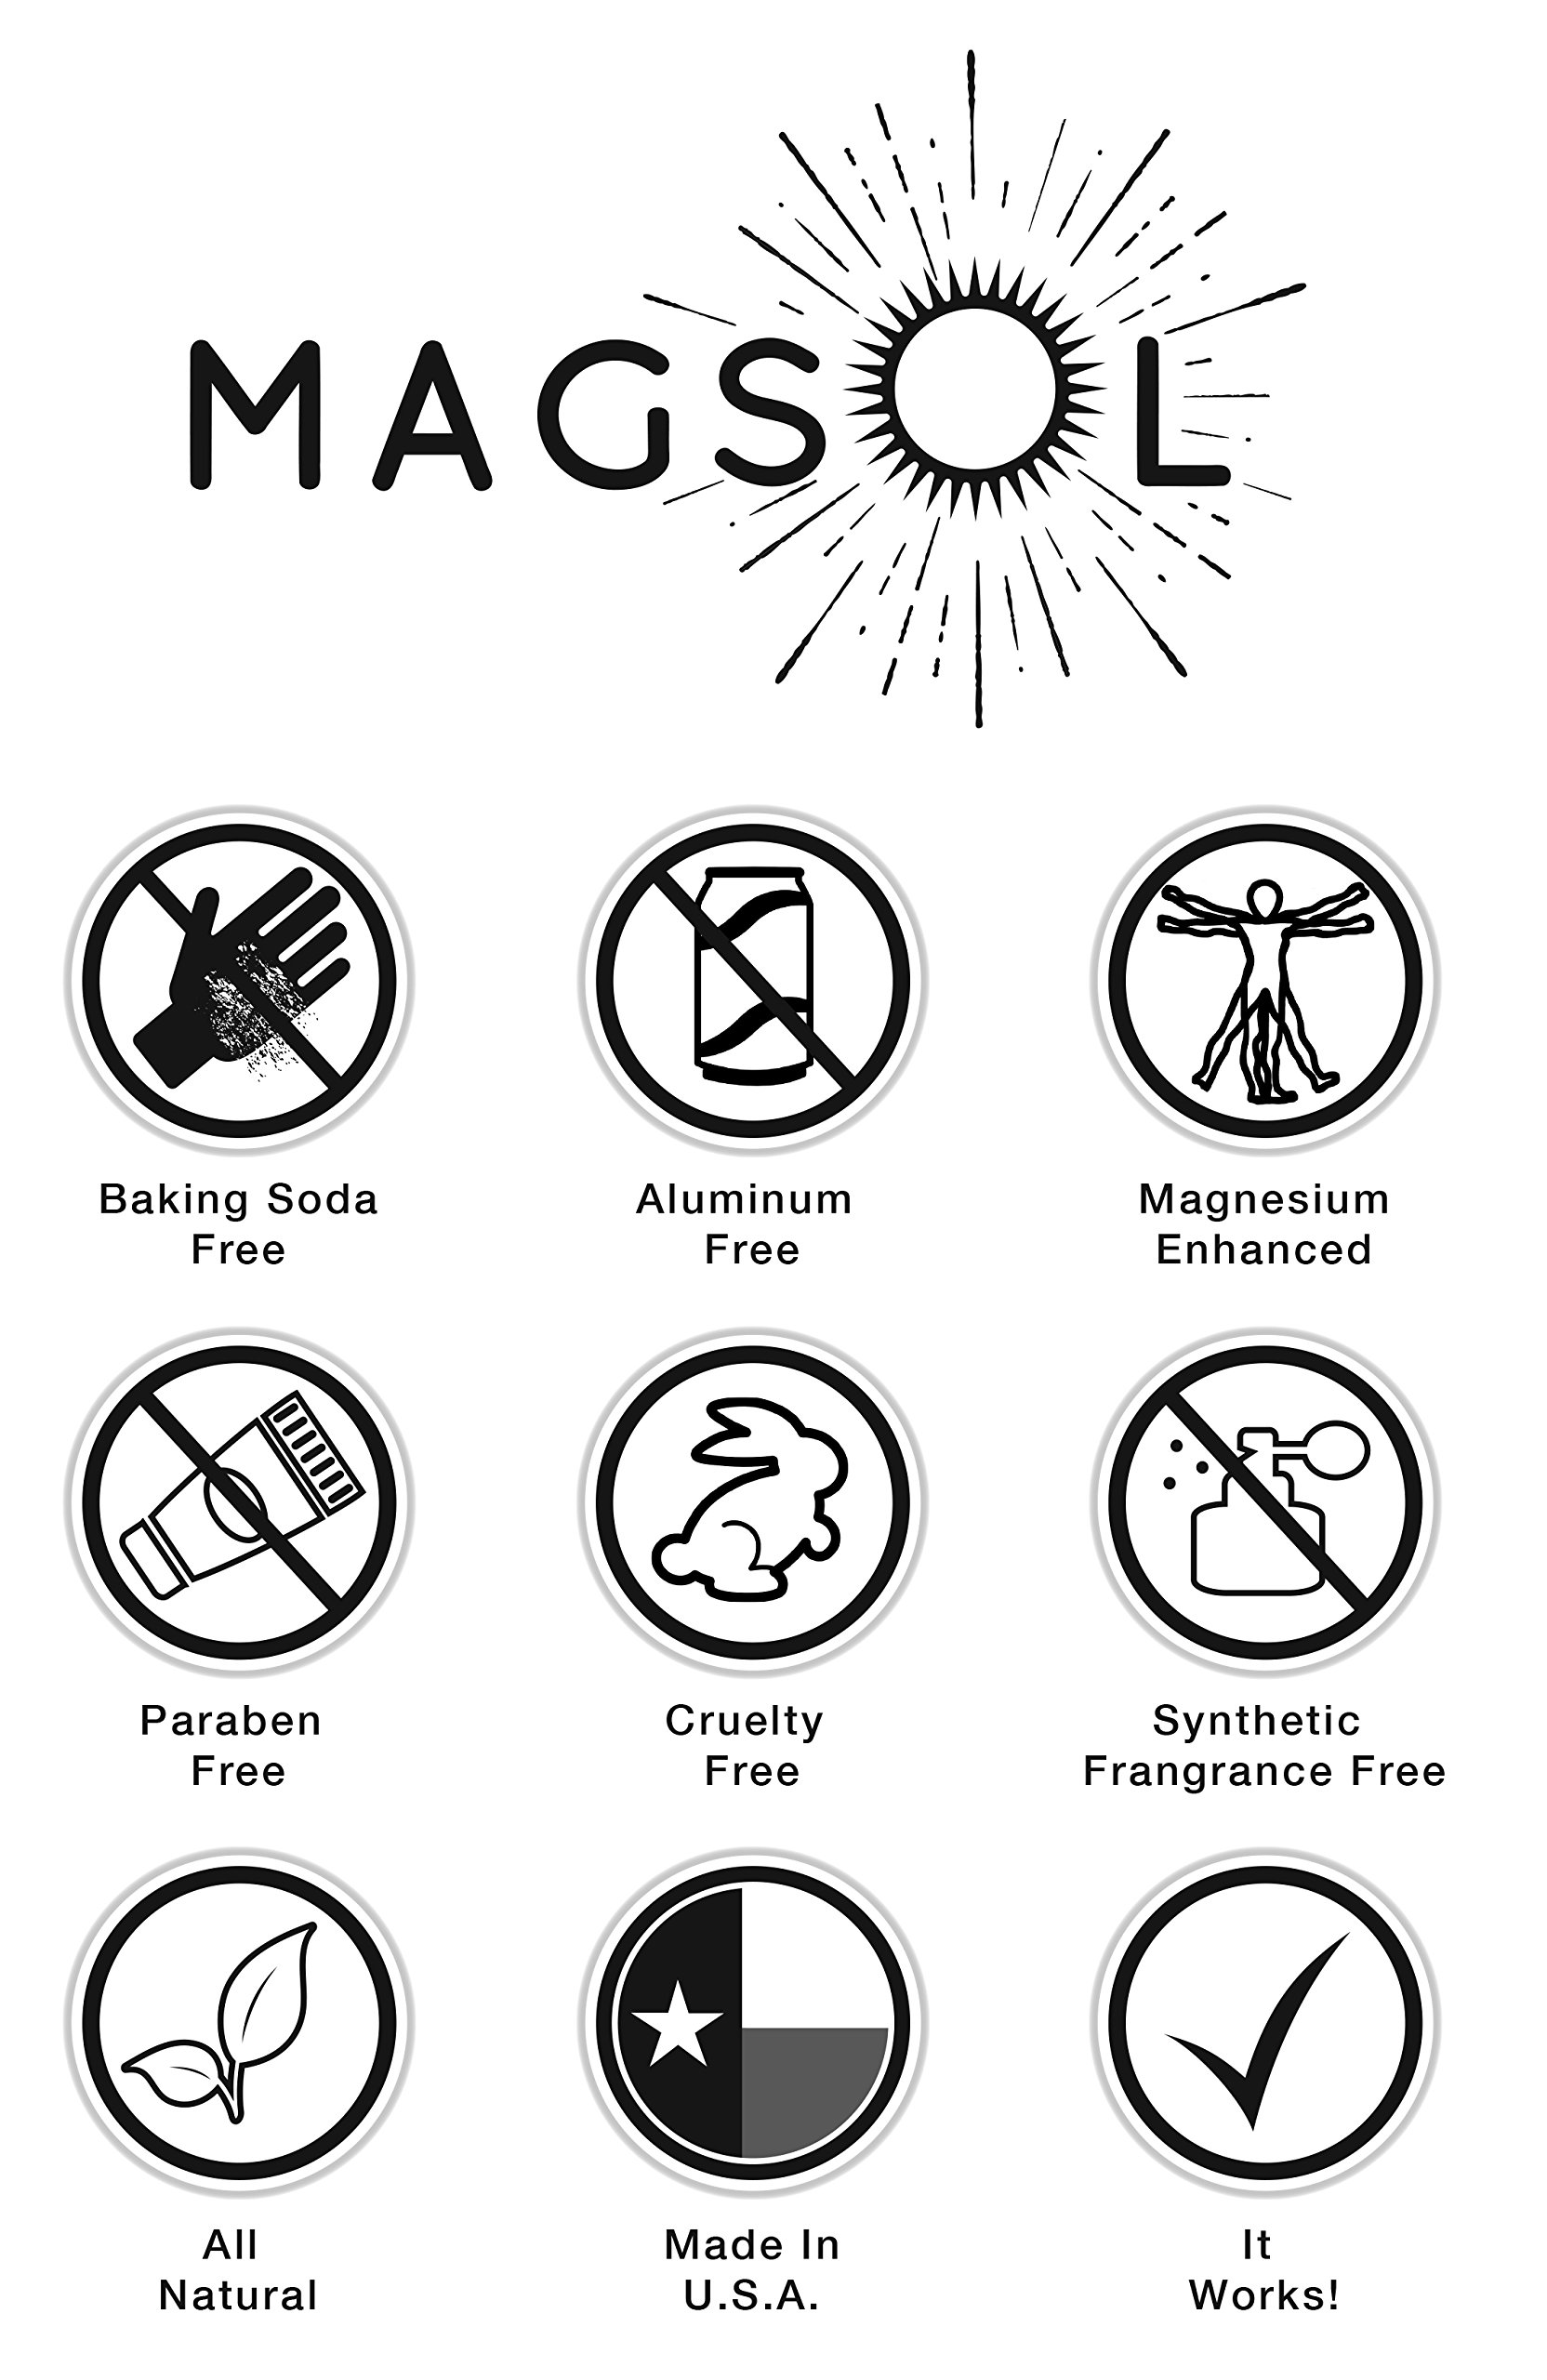 Rose Magnesium Deodorant - Aluminum Free, Baking Soda Free, Alcohol Free, Cruelty Free, Sensitive Skin, All Natural, For Women Men Boys Girls Kids, Magnesium Deodorant 2.8 oz (Lasts over 4 months) by MagSol Organics (Image #3)